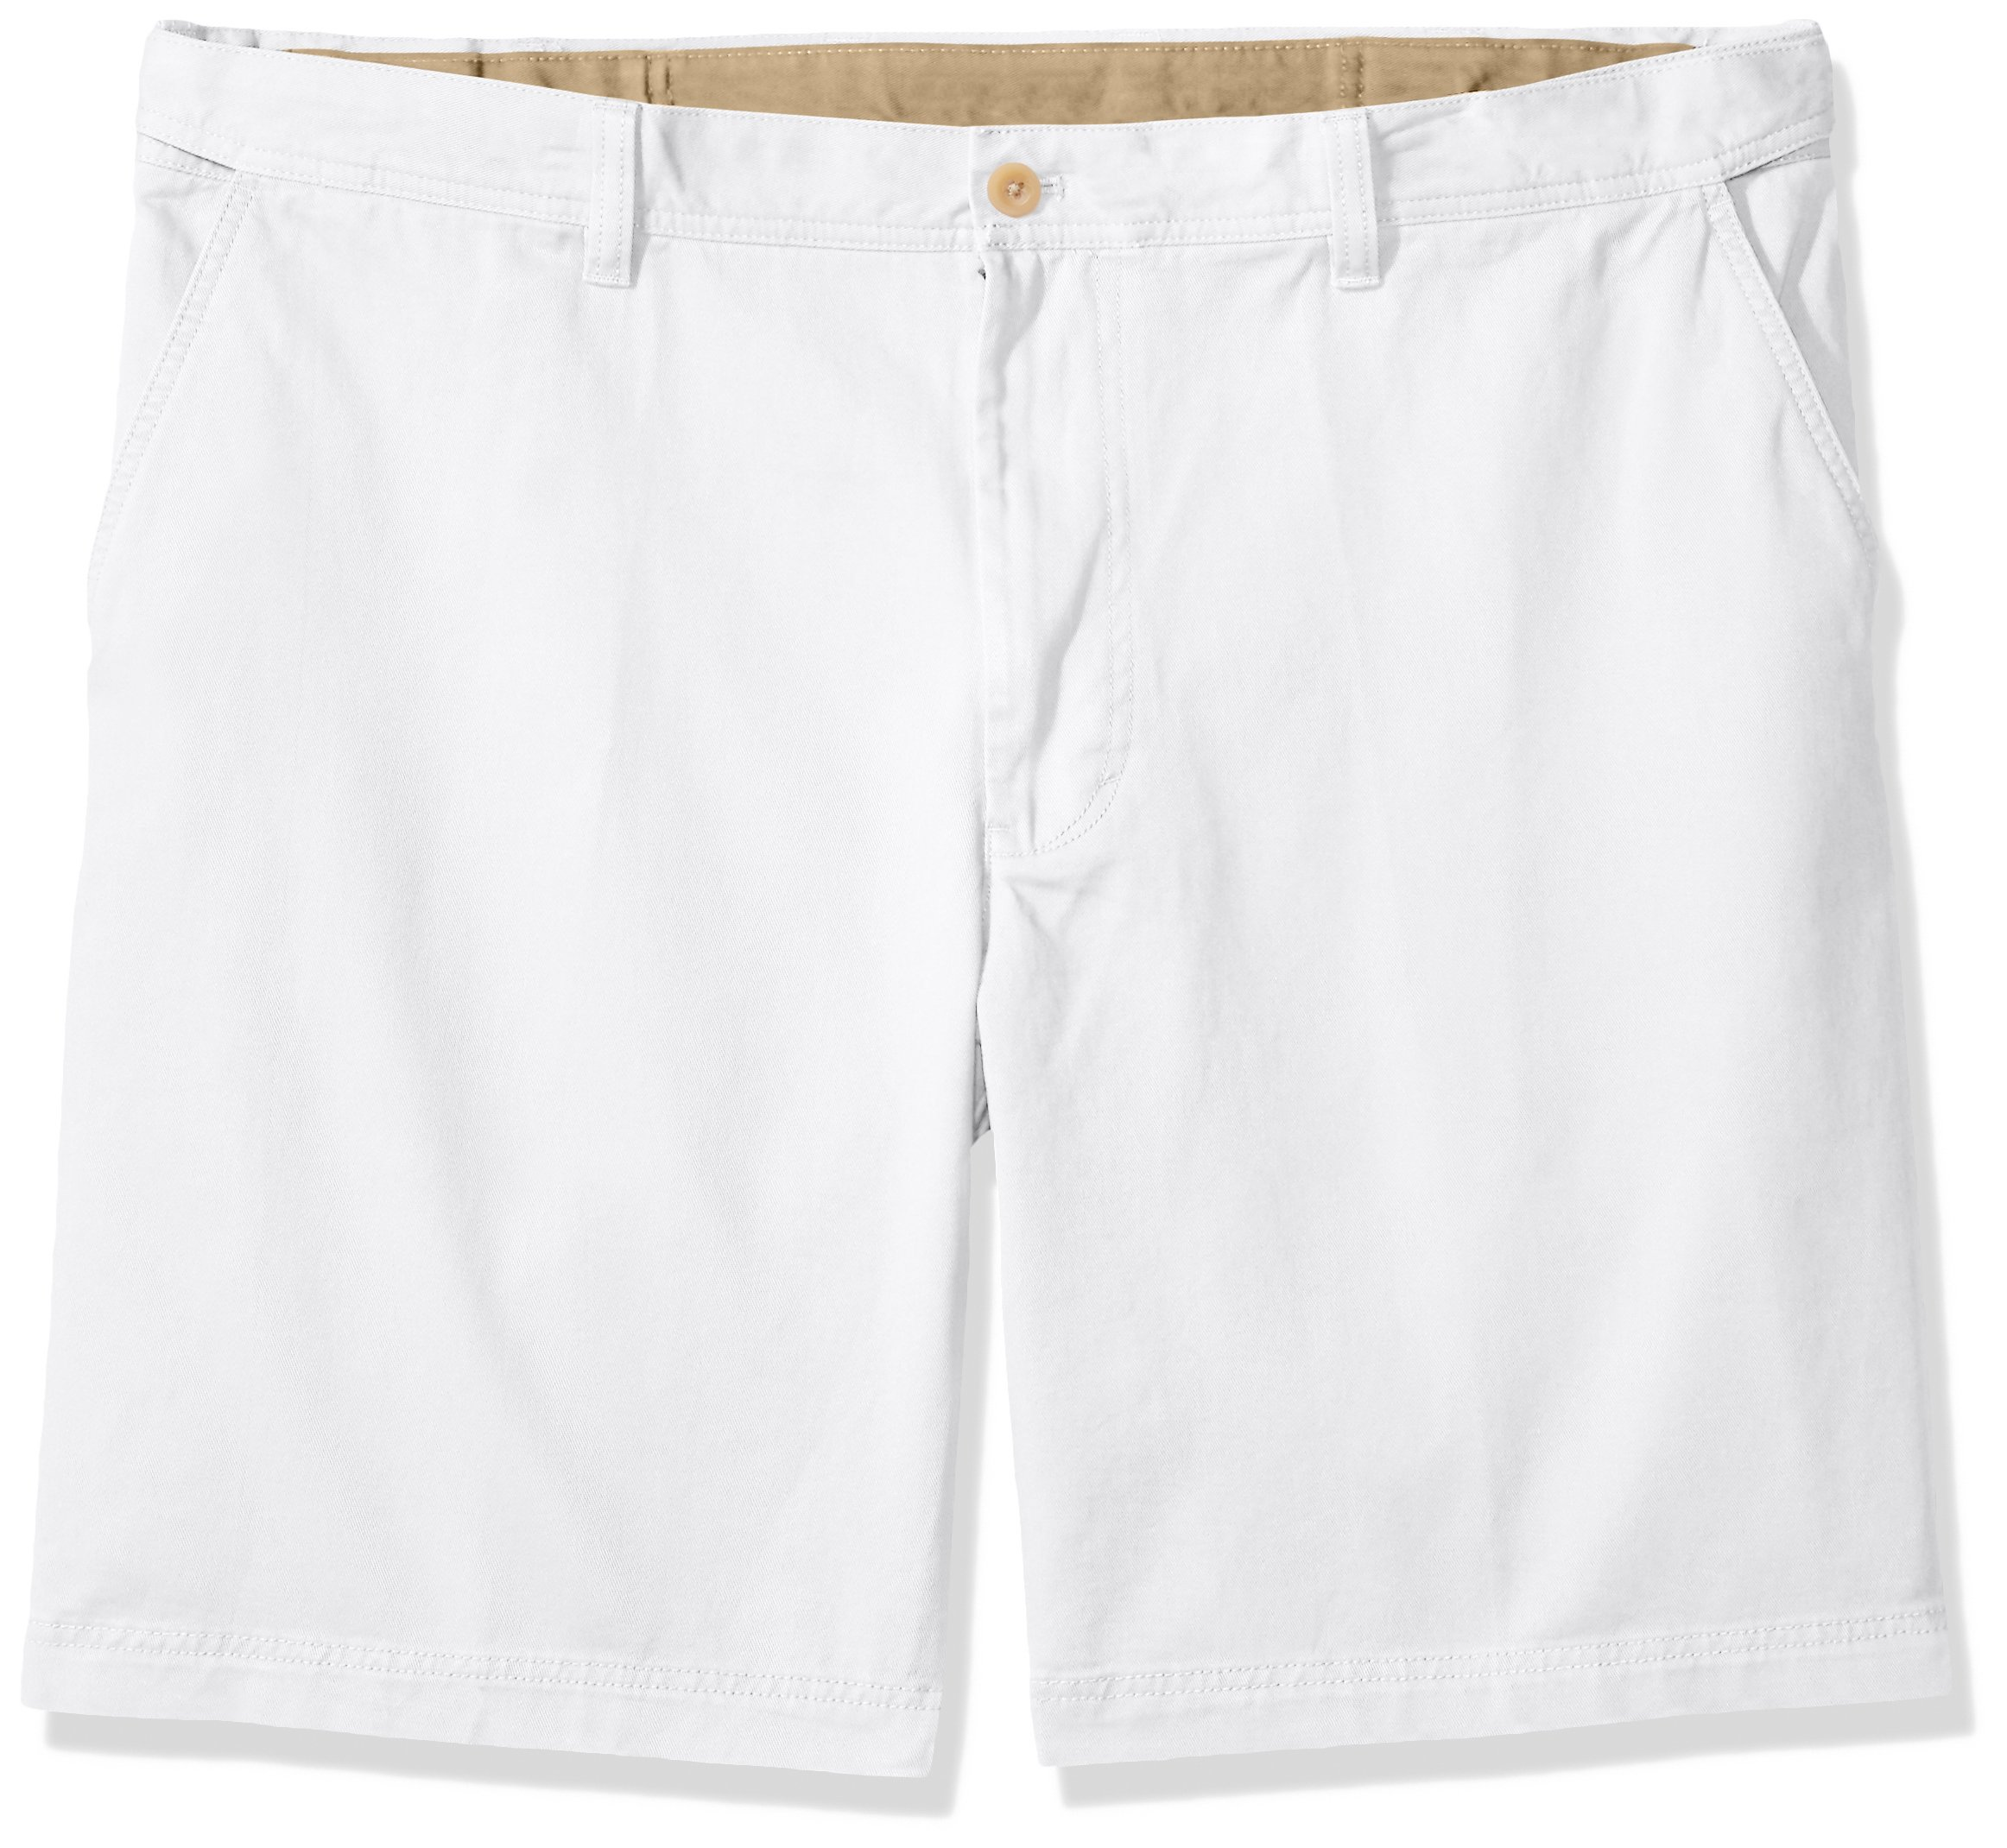 IZOD Men's Big and Tall Flat Front Solid Oxford Short, White, 54W